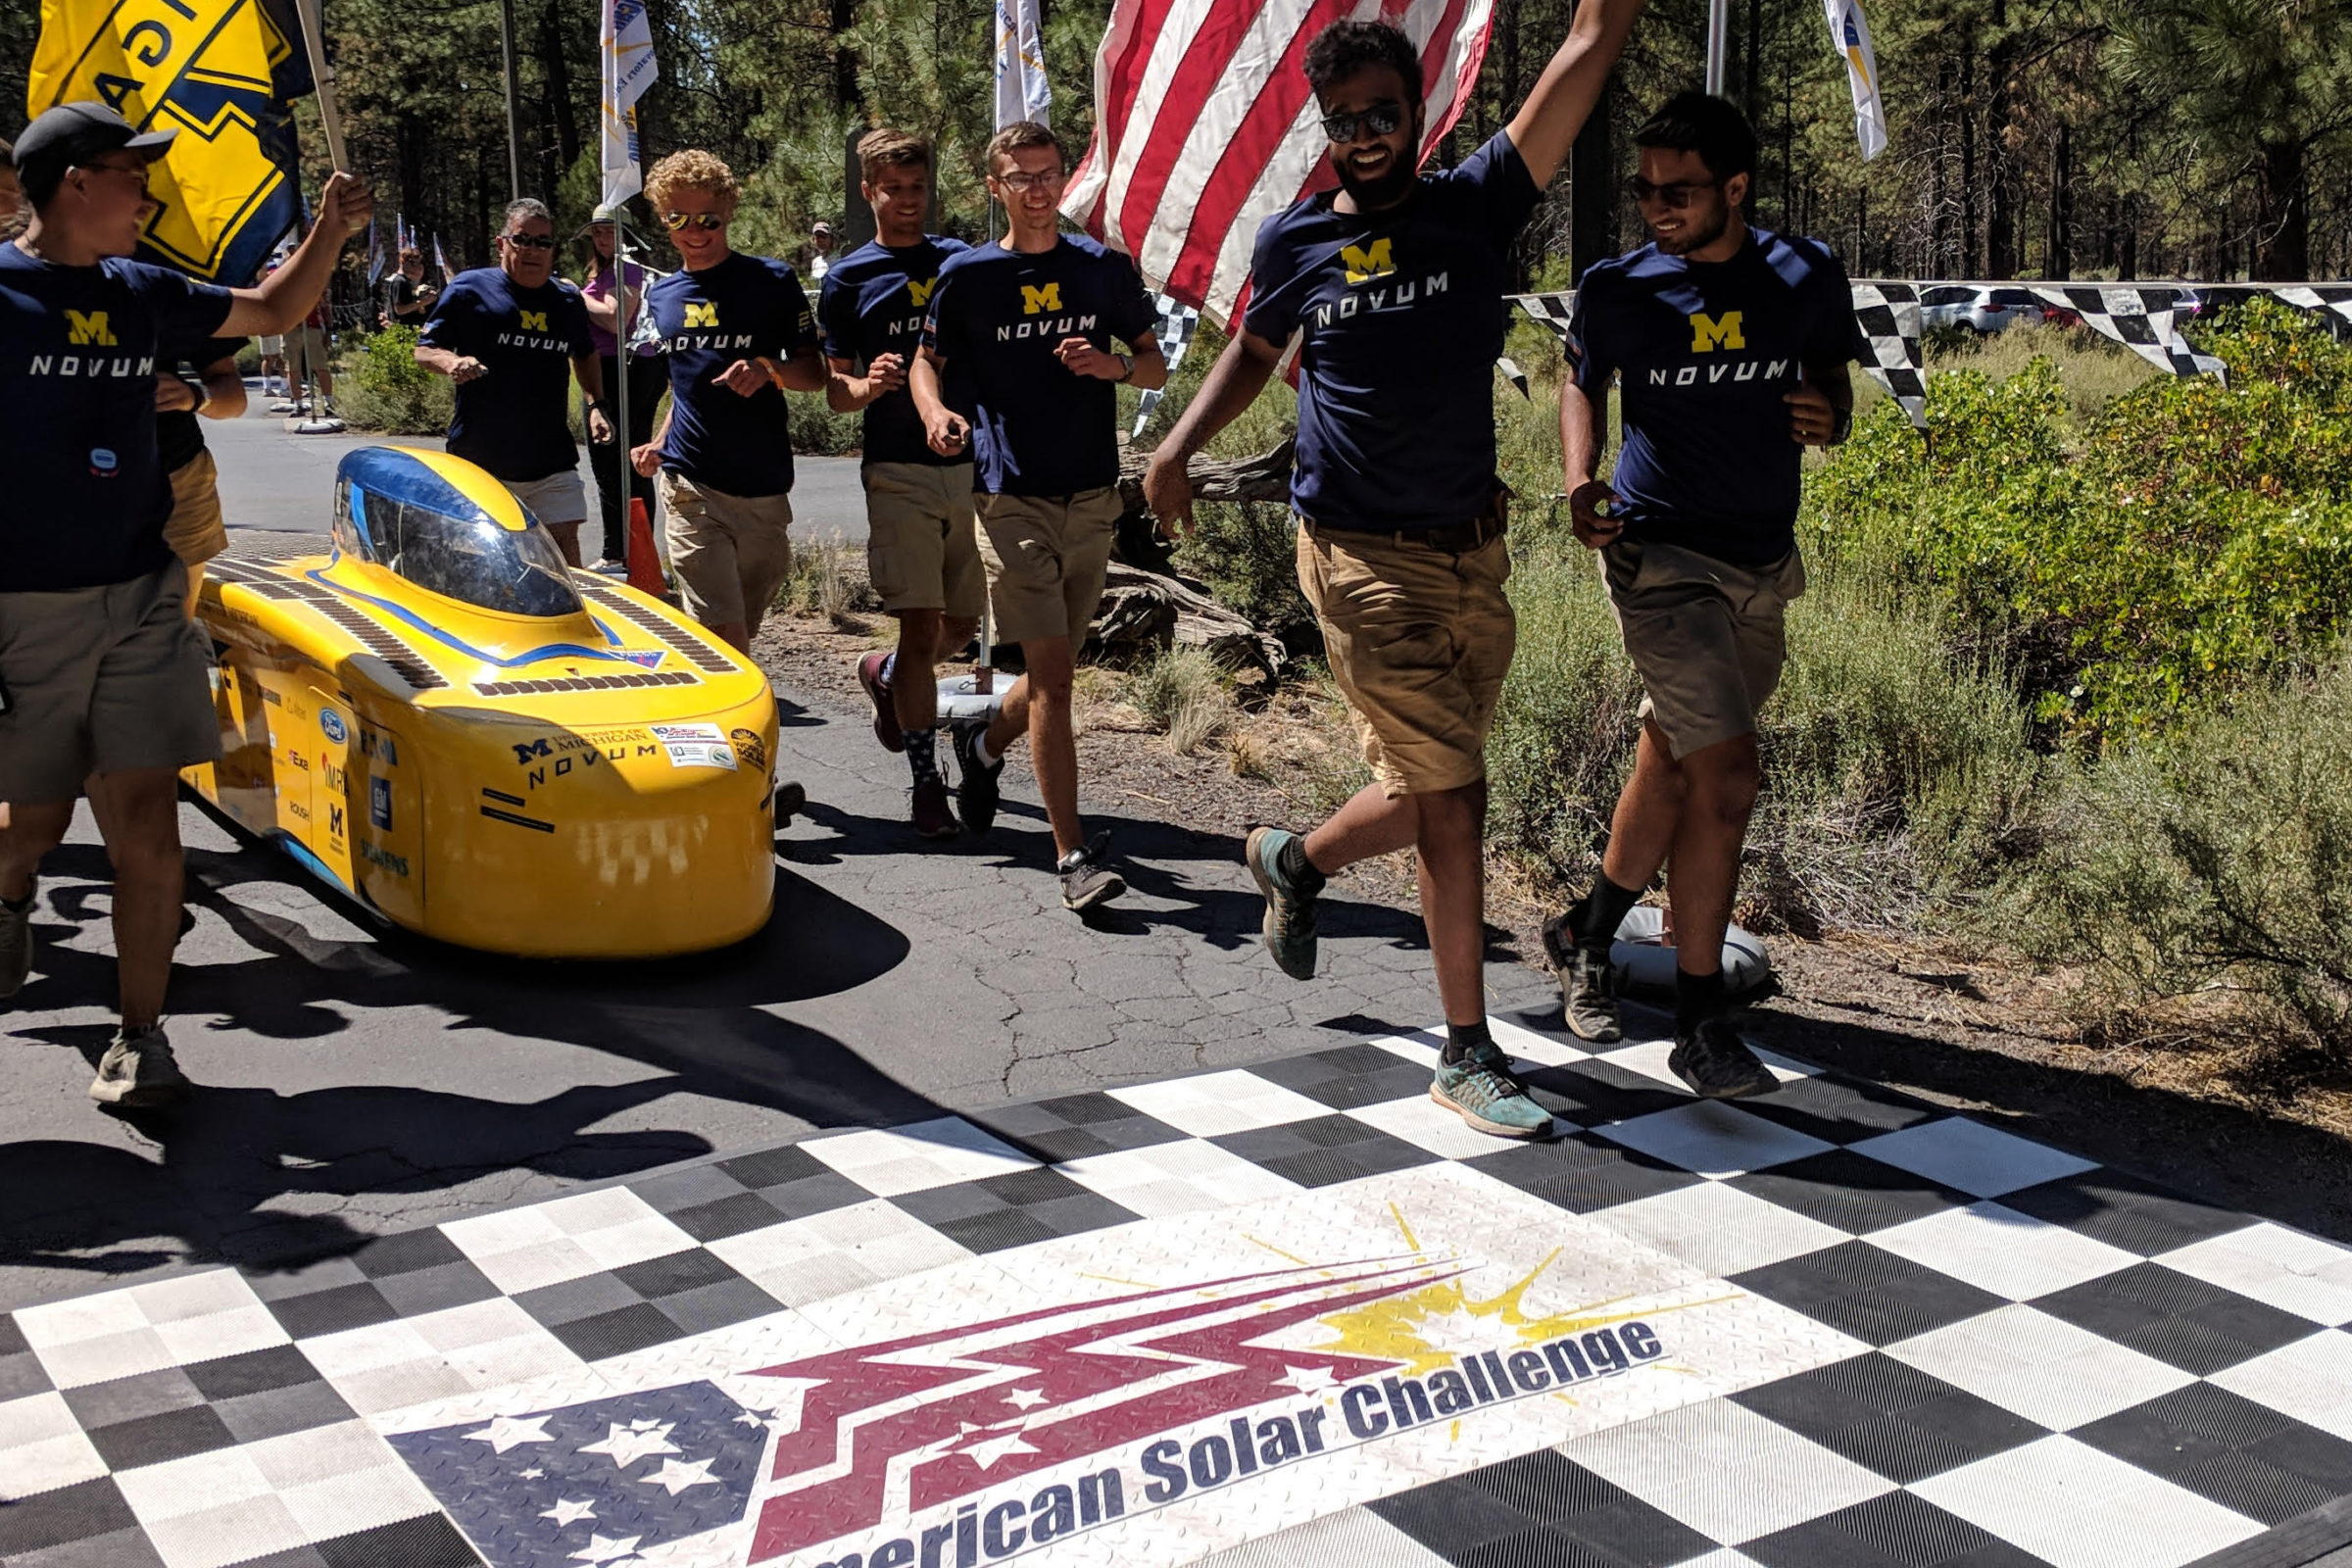 The Michigan Solar Car Team crosses the finish line. Courtesy of American Solar Challenge